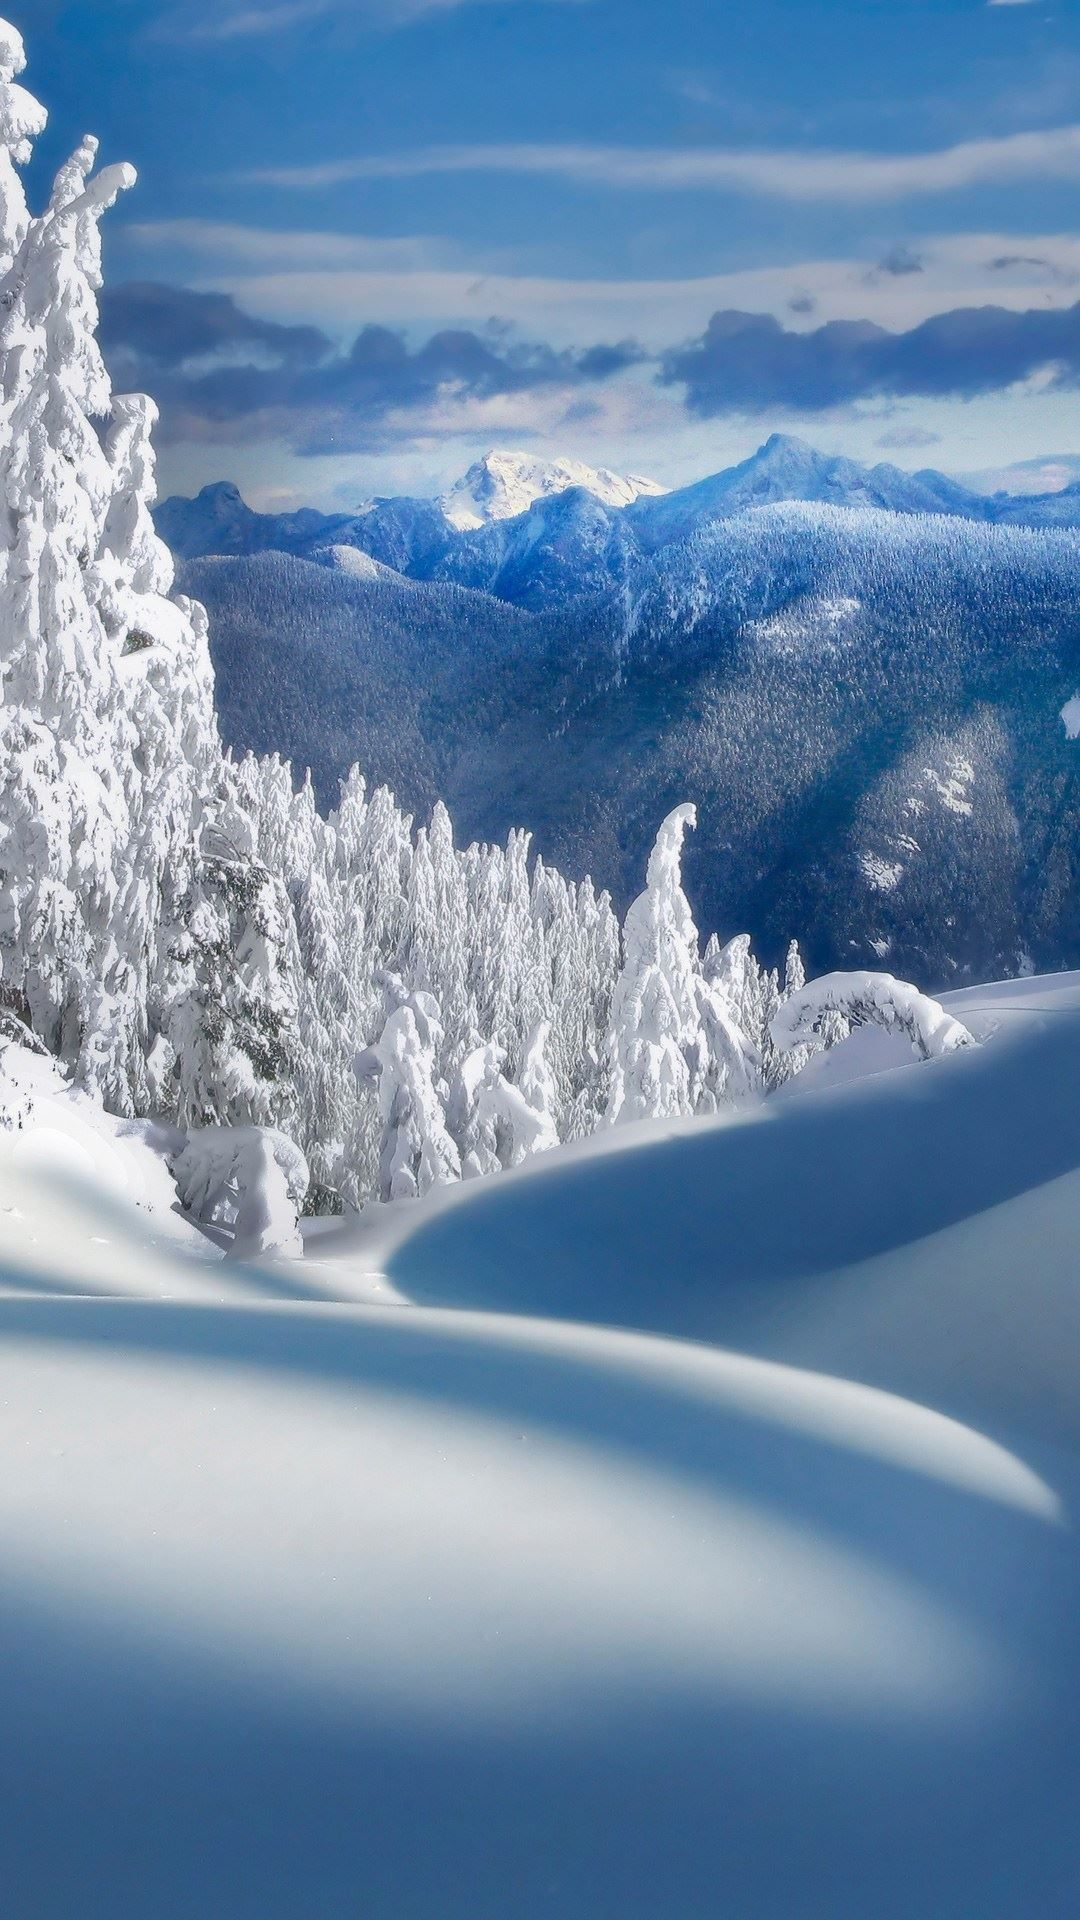 Fairy Tale Christmas Snow Landscape Android Wallpapers Winter Wallpaper Winter Landscape Winter Scenery